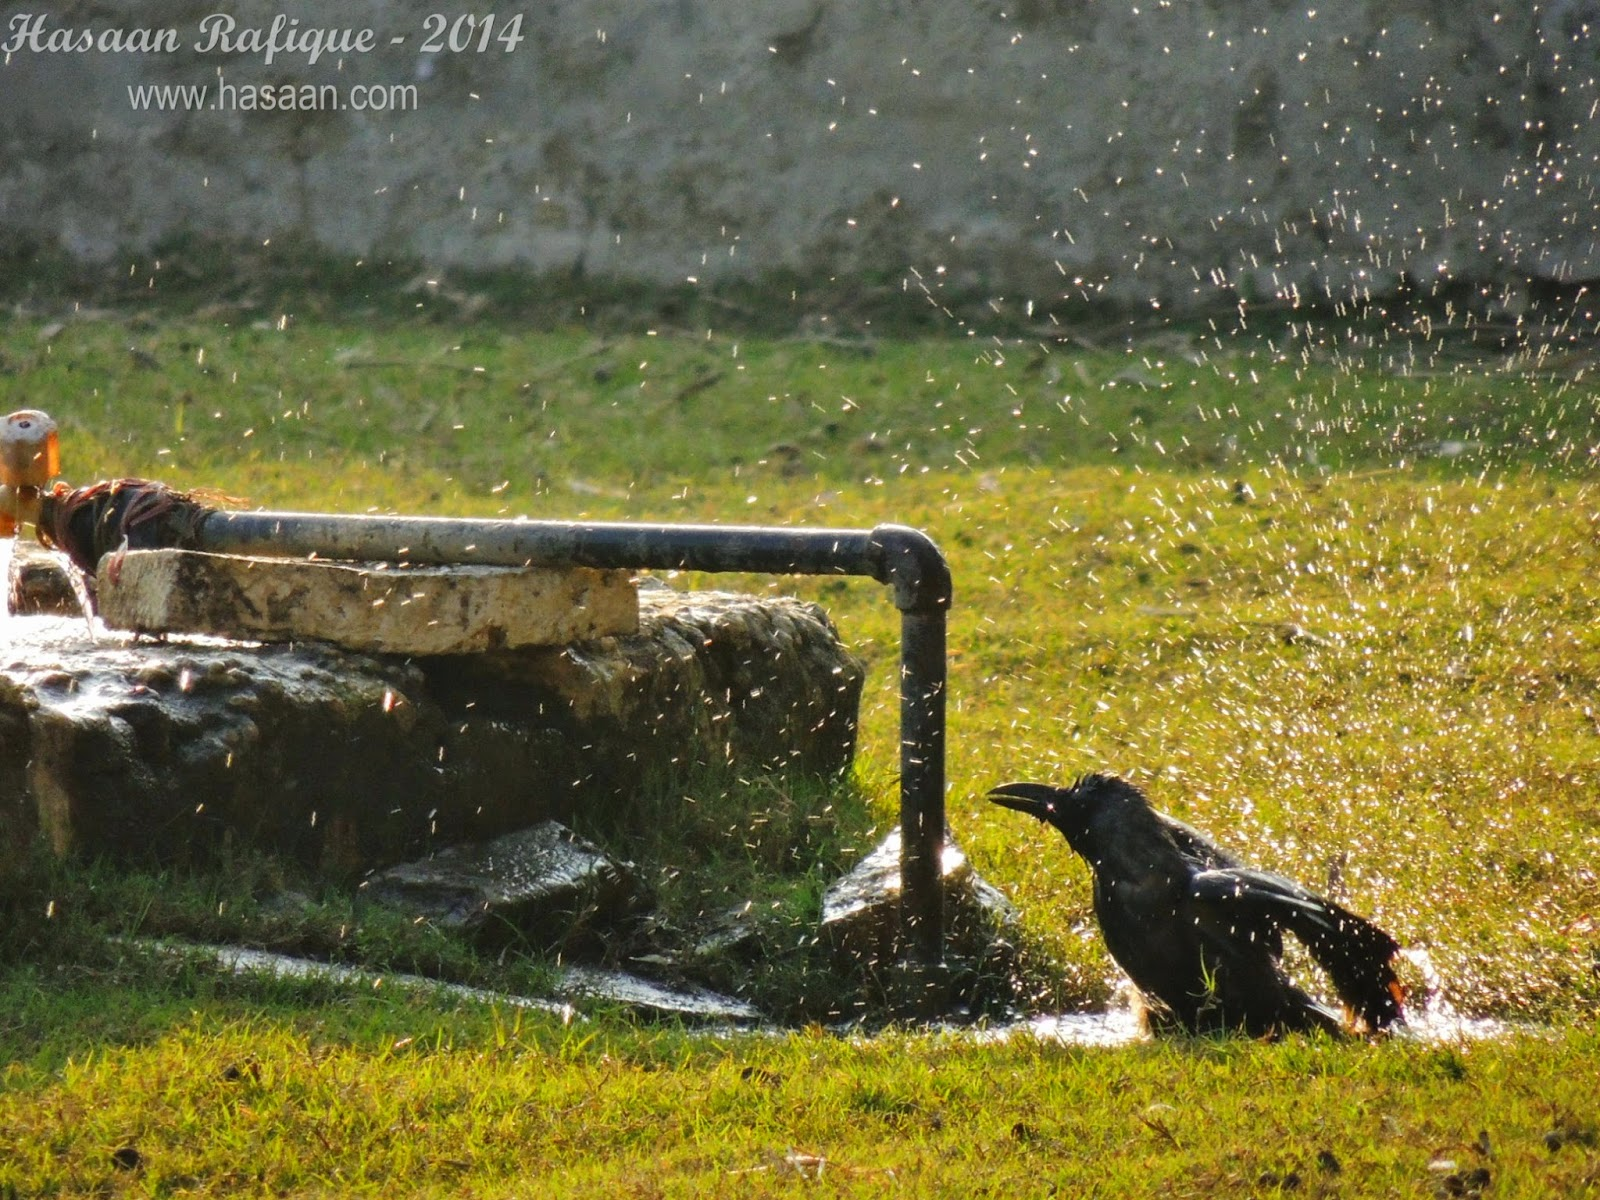 Not exactly a wildlife shot. A crow bathing itself in the water to combat the heat.